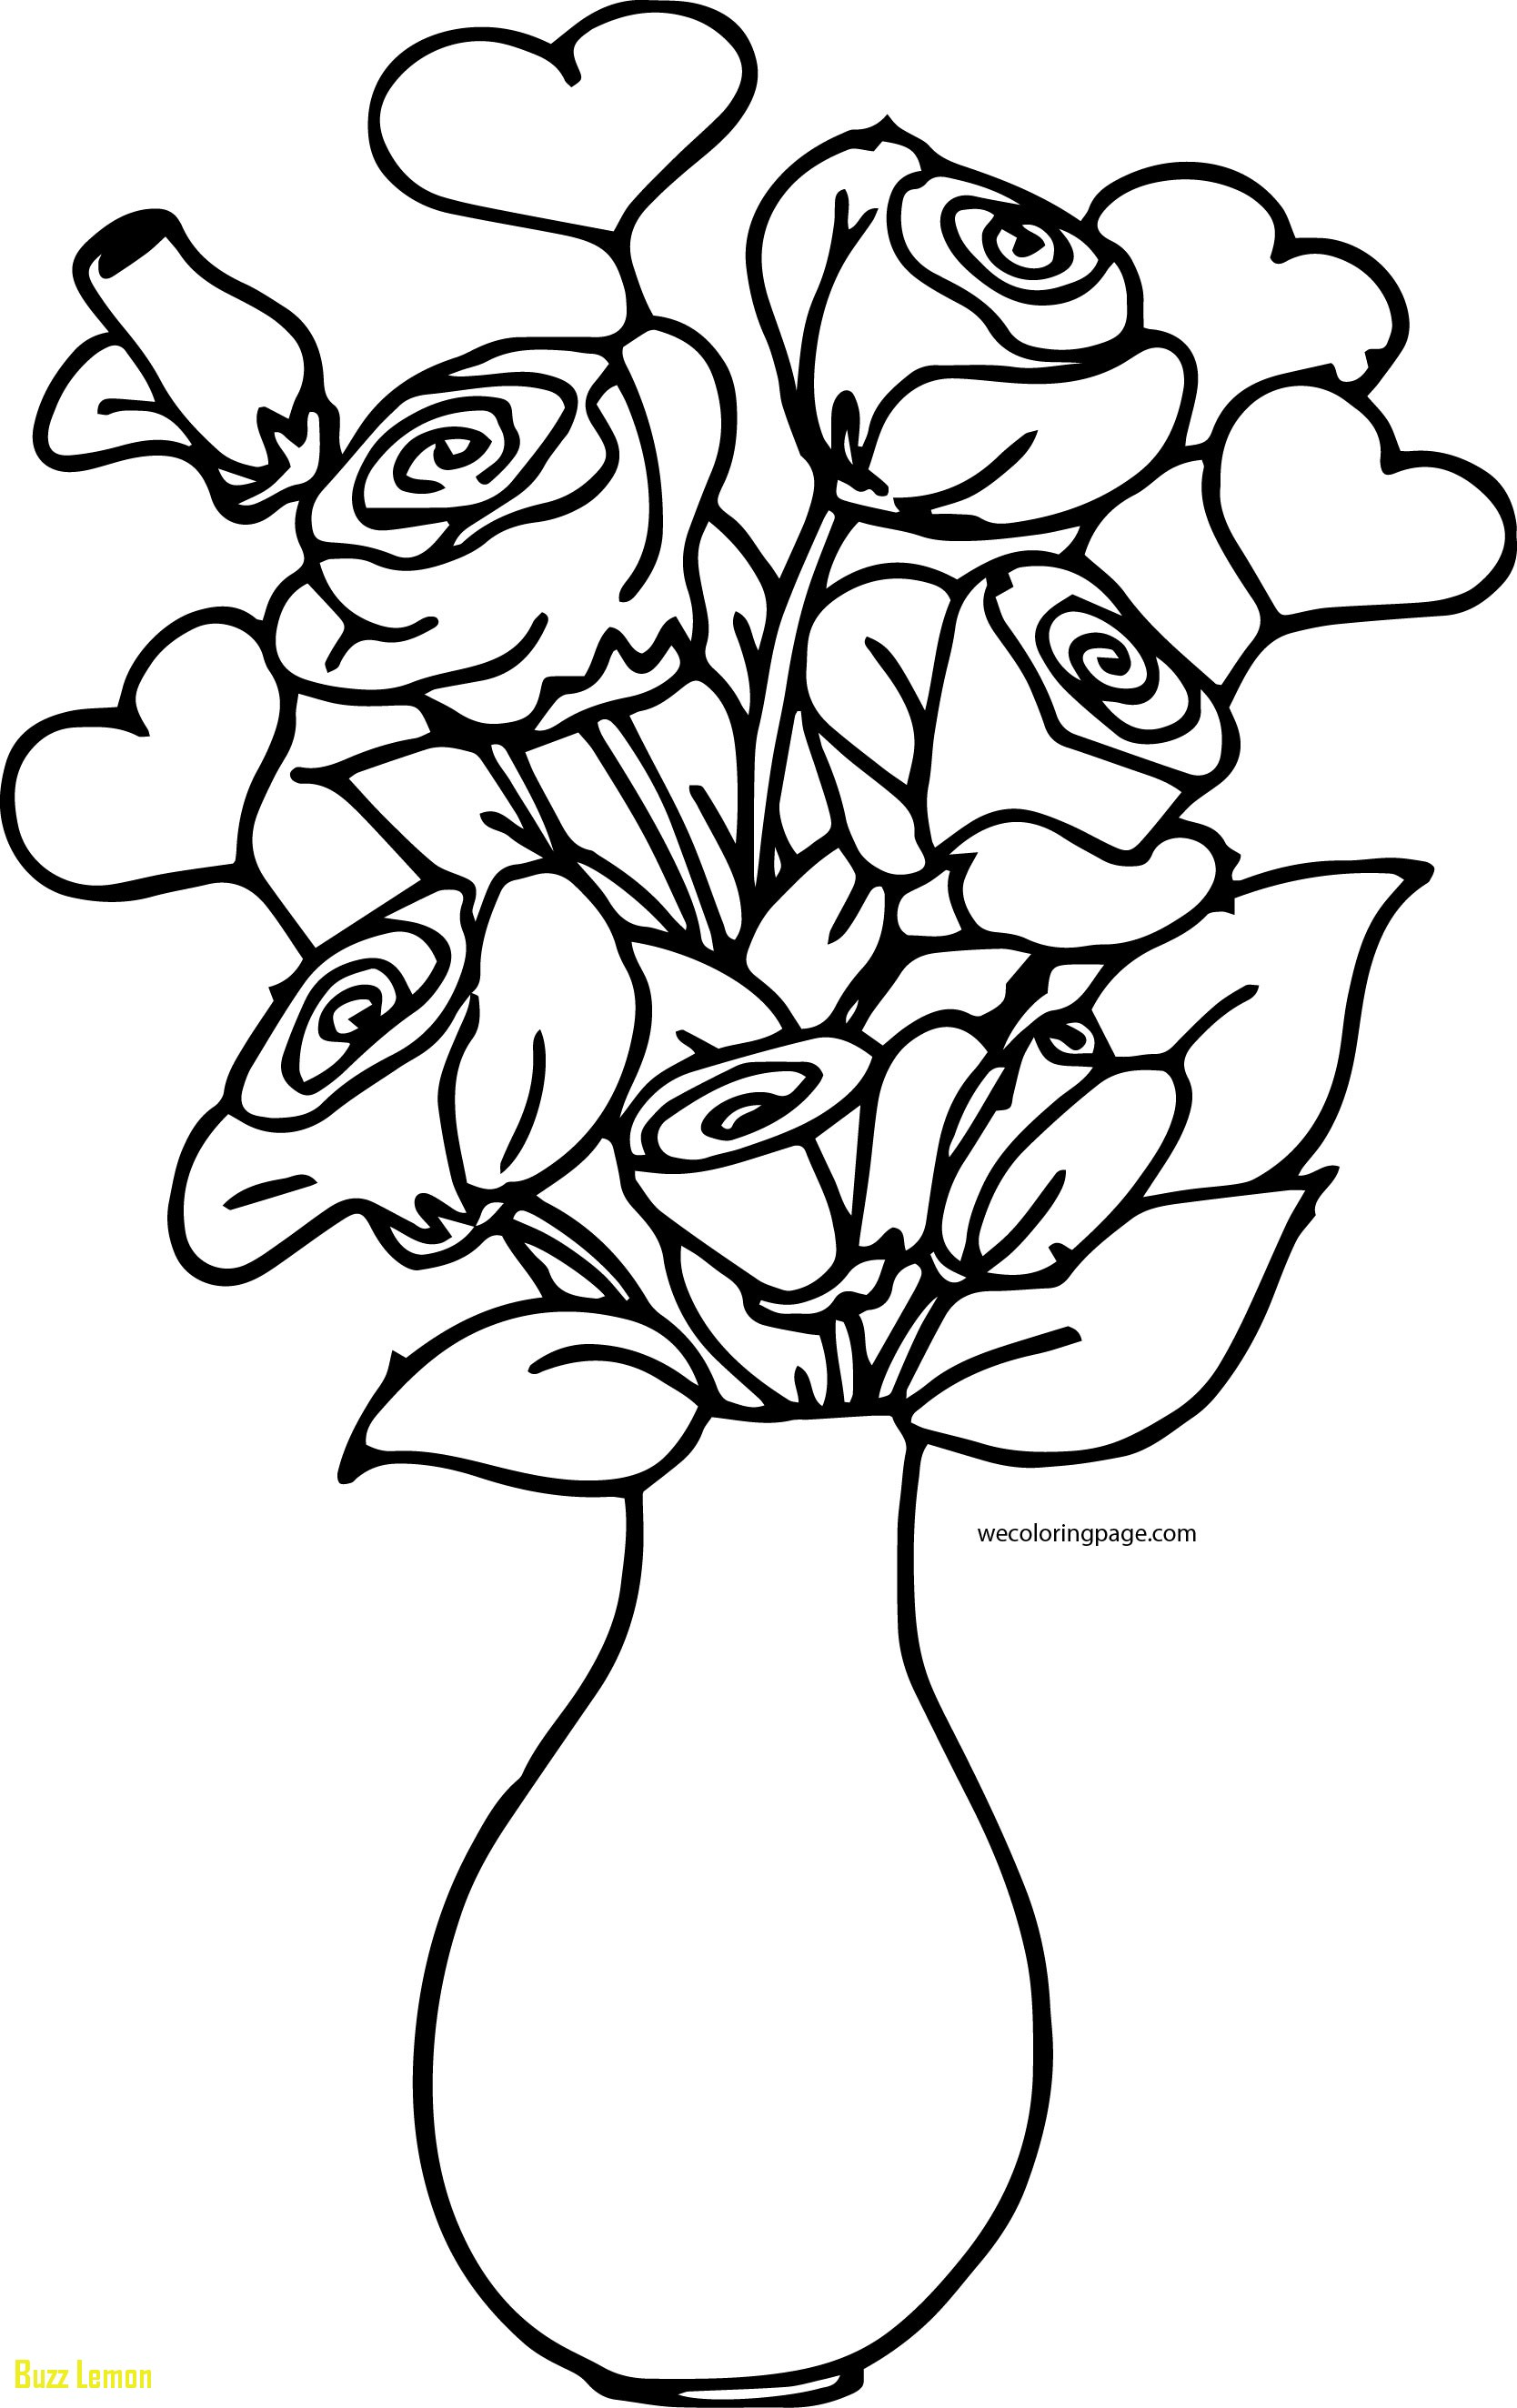 colouring pages flowers in a vase flower vase coloring pages at getcoloringscom free in pages flowers a colouring vase